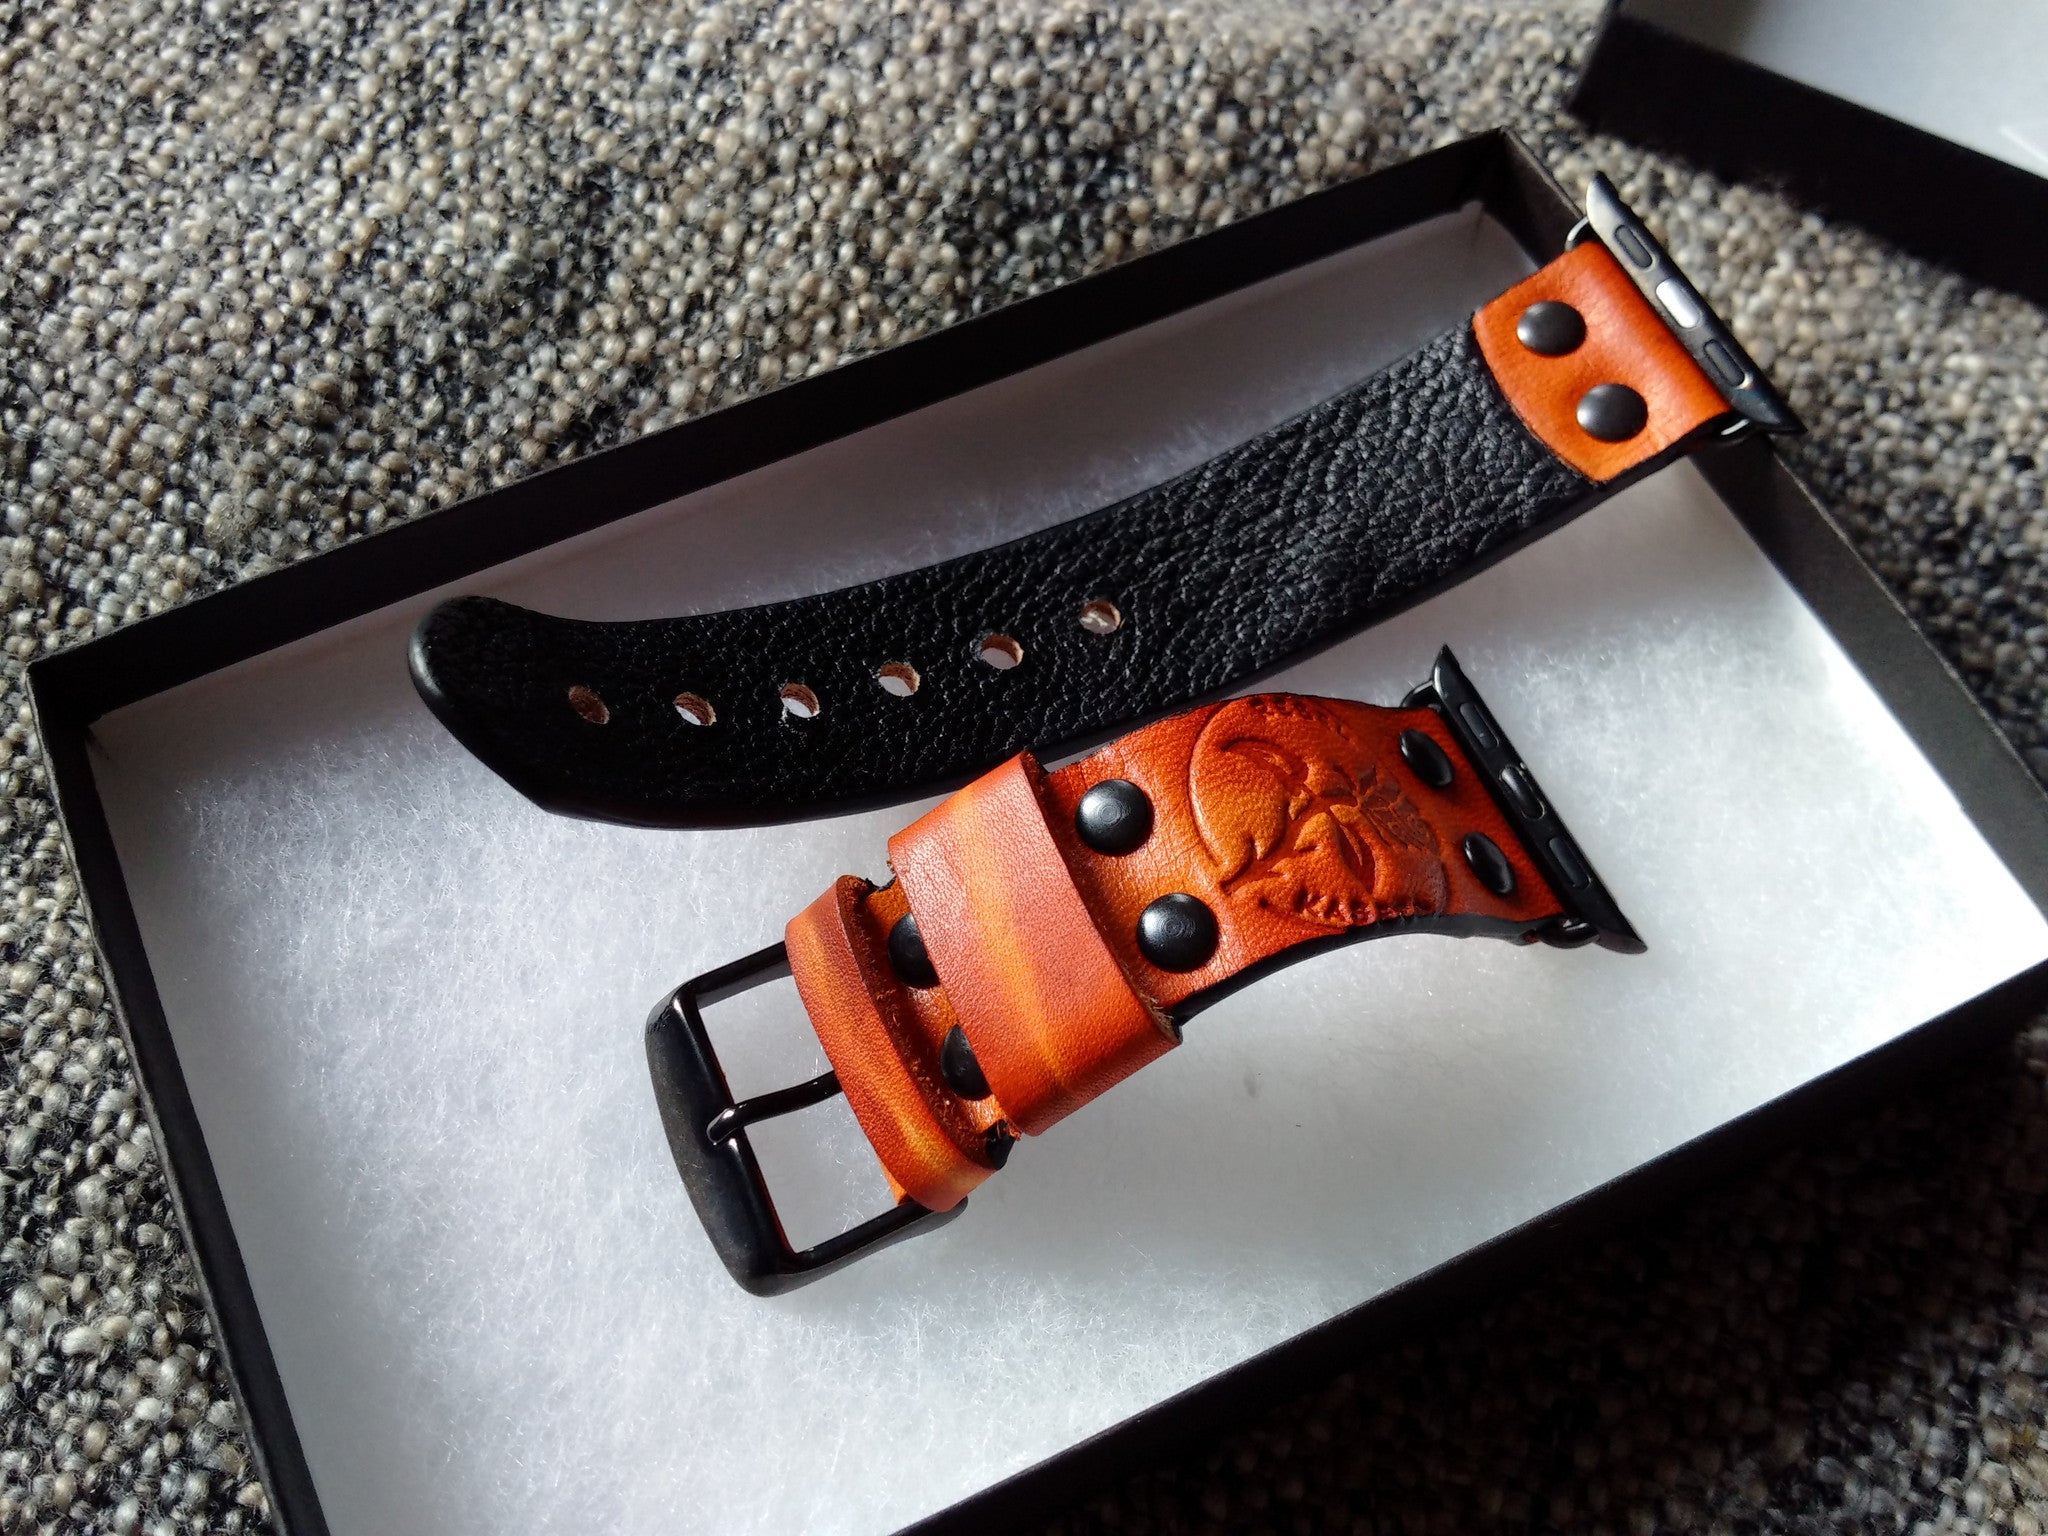 watchstrap for black apple watch, black adaptor,  皮革表带